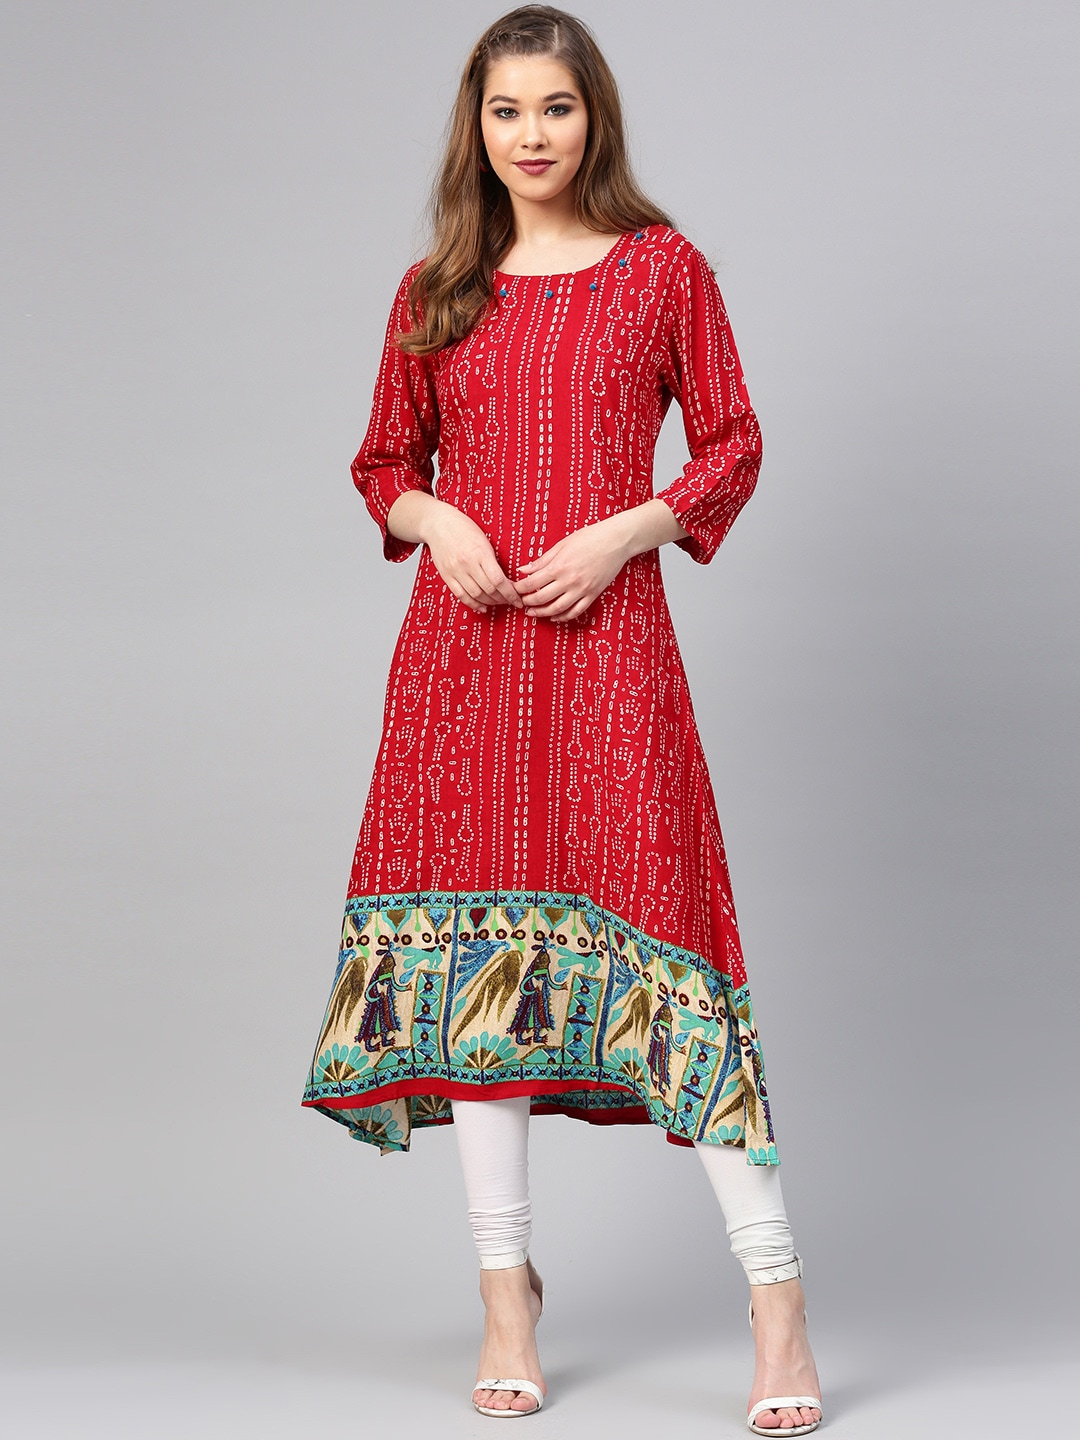 29d1d3ac39b Women Red Kurtas - Buy Women Red Kurtas online in India